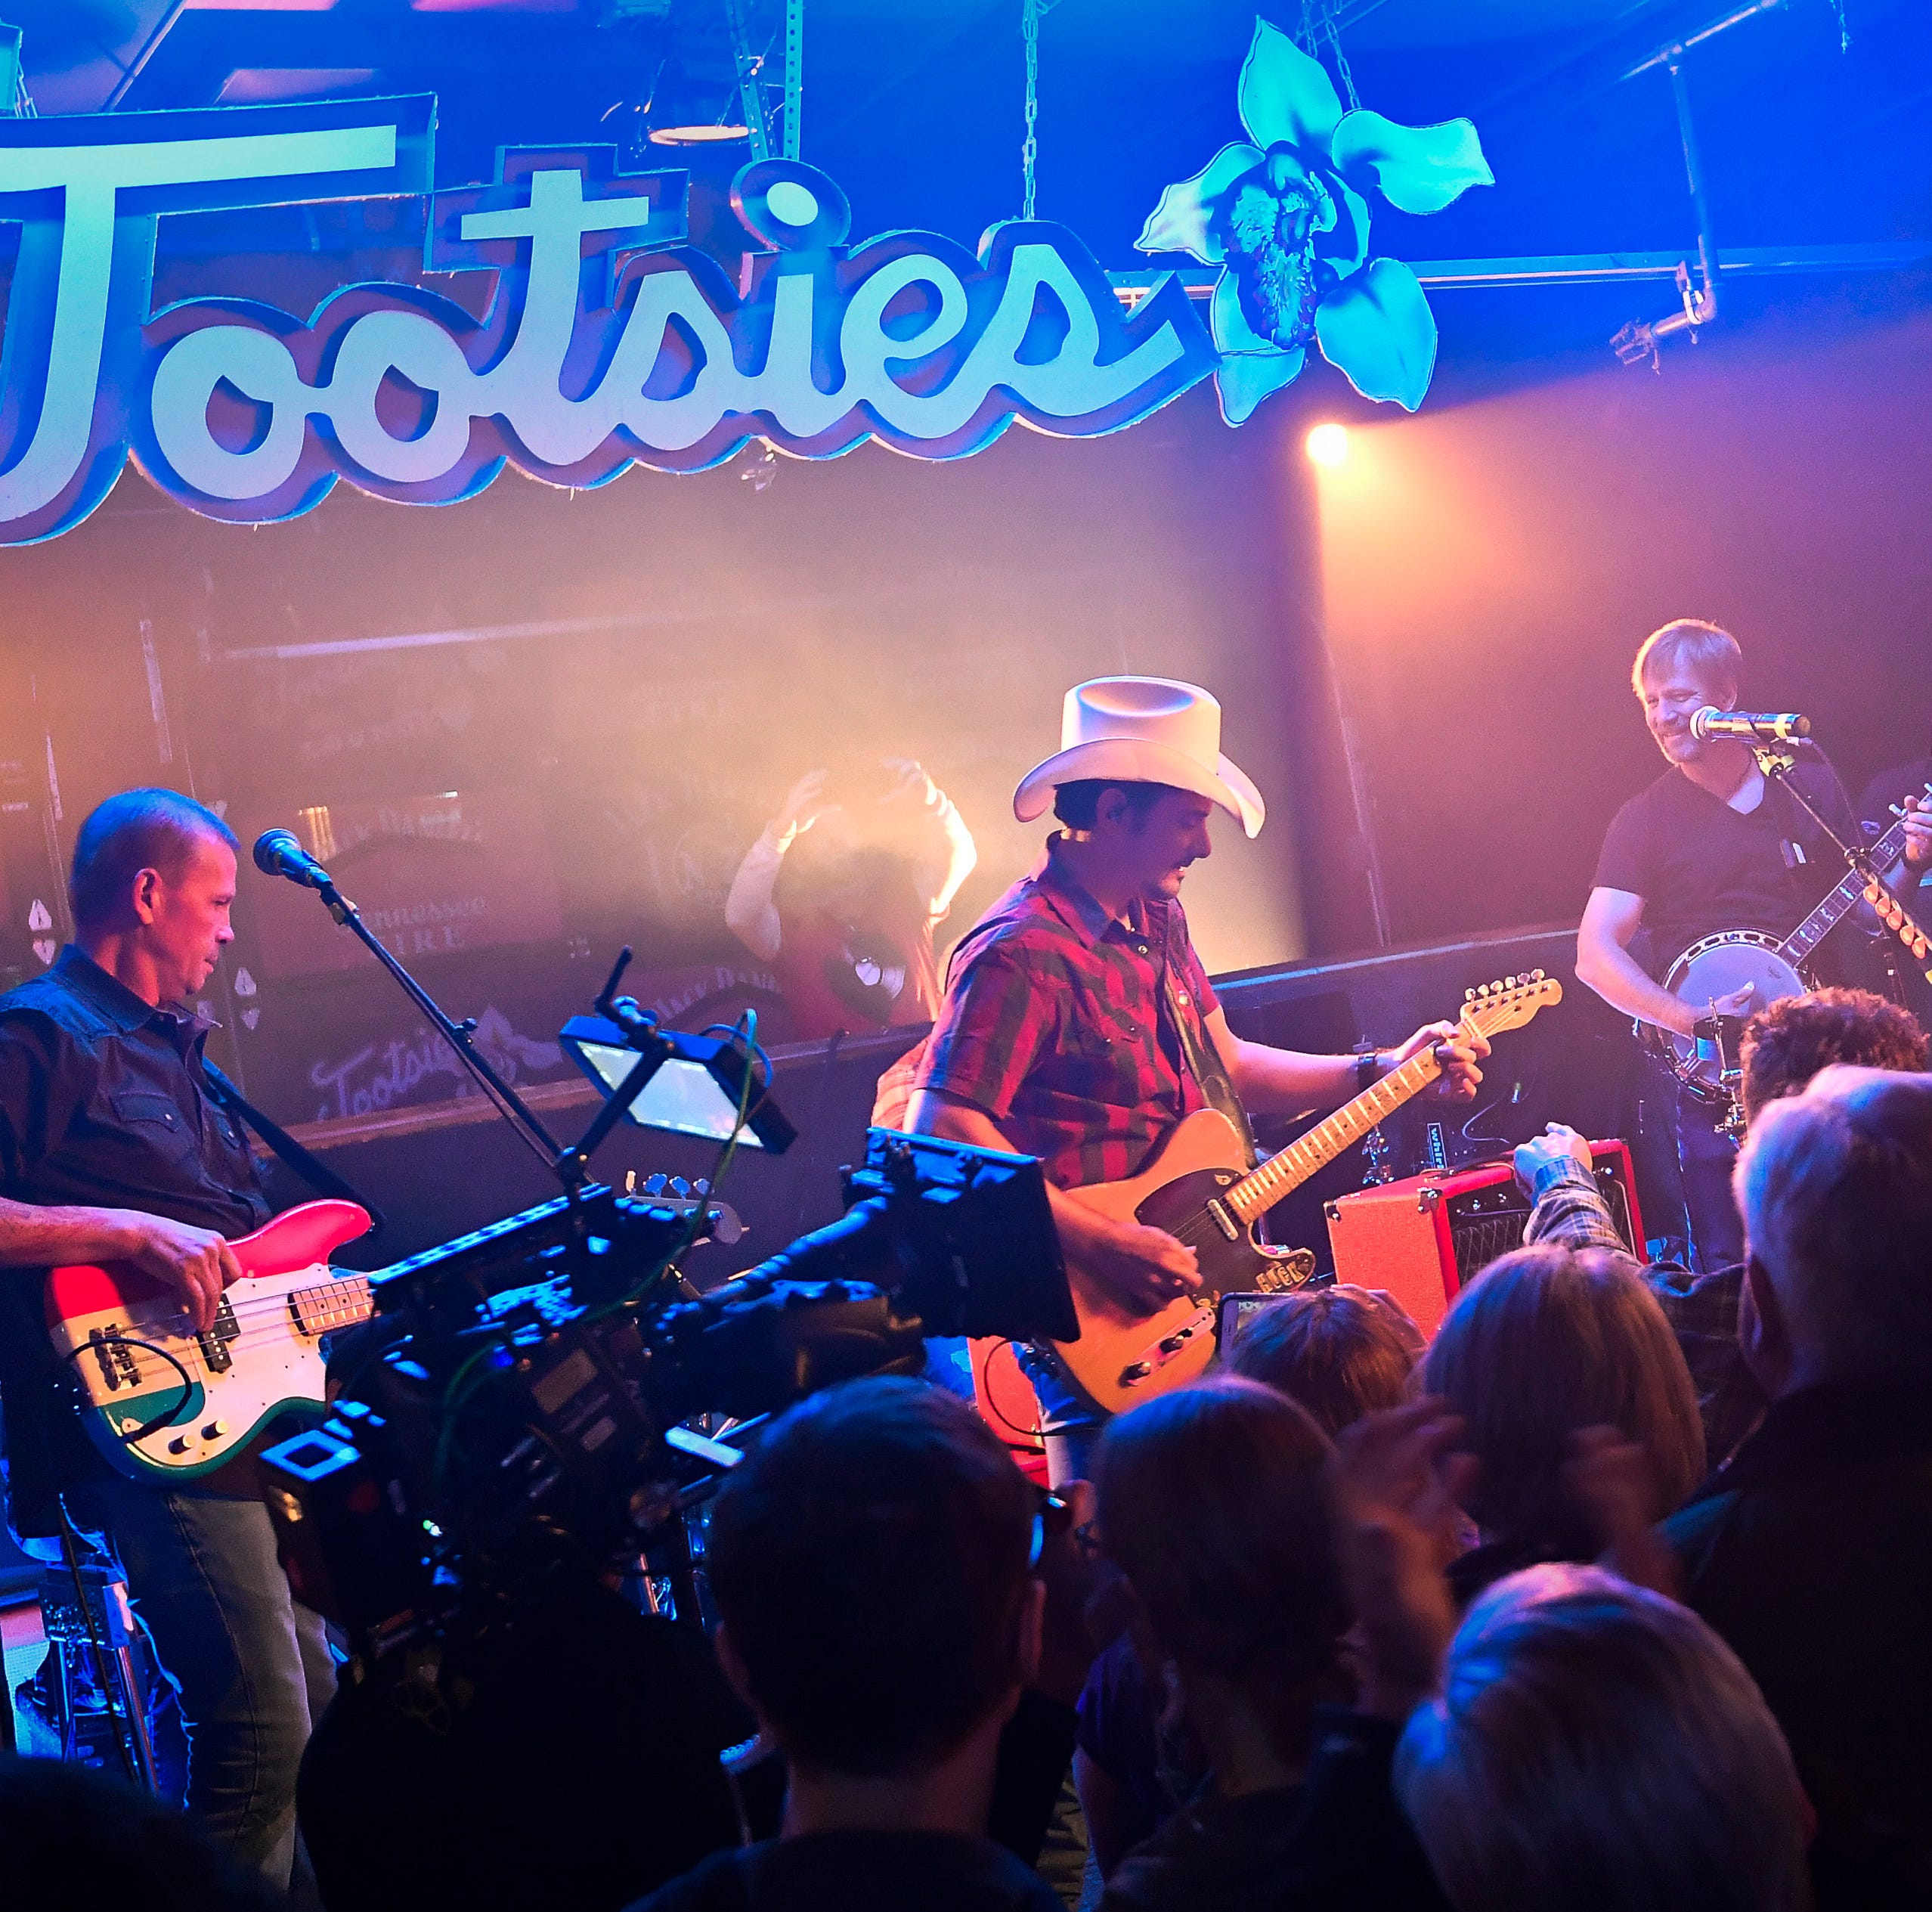 Brad Paisley takes over Tootsies for video shoot